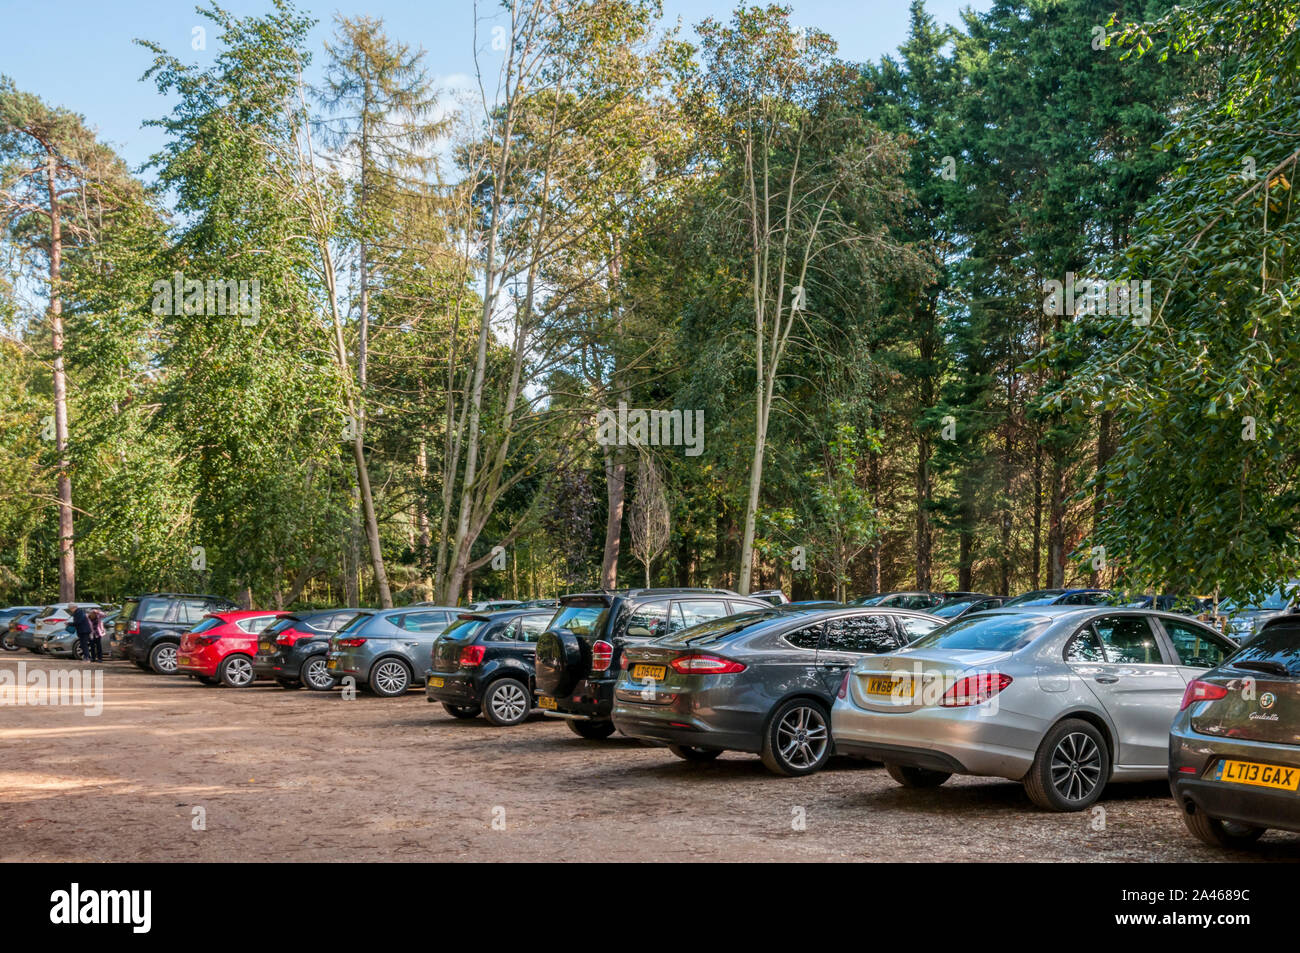 Free Car Parking At Sandringham Country Park On The Royal Estate At Sandringham In Norfolk Is To End In February 2020 Stock Photo Alamy